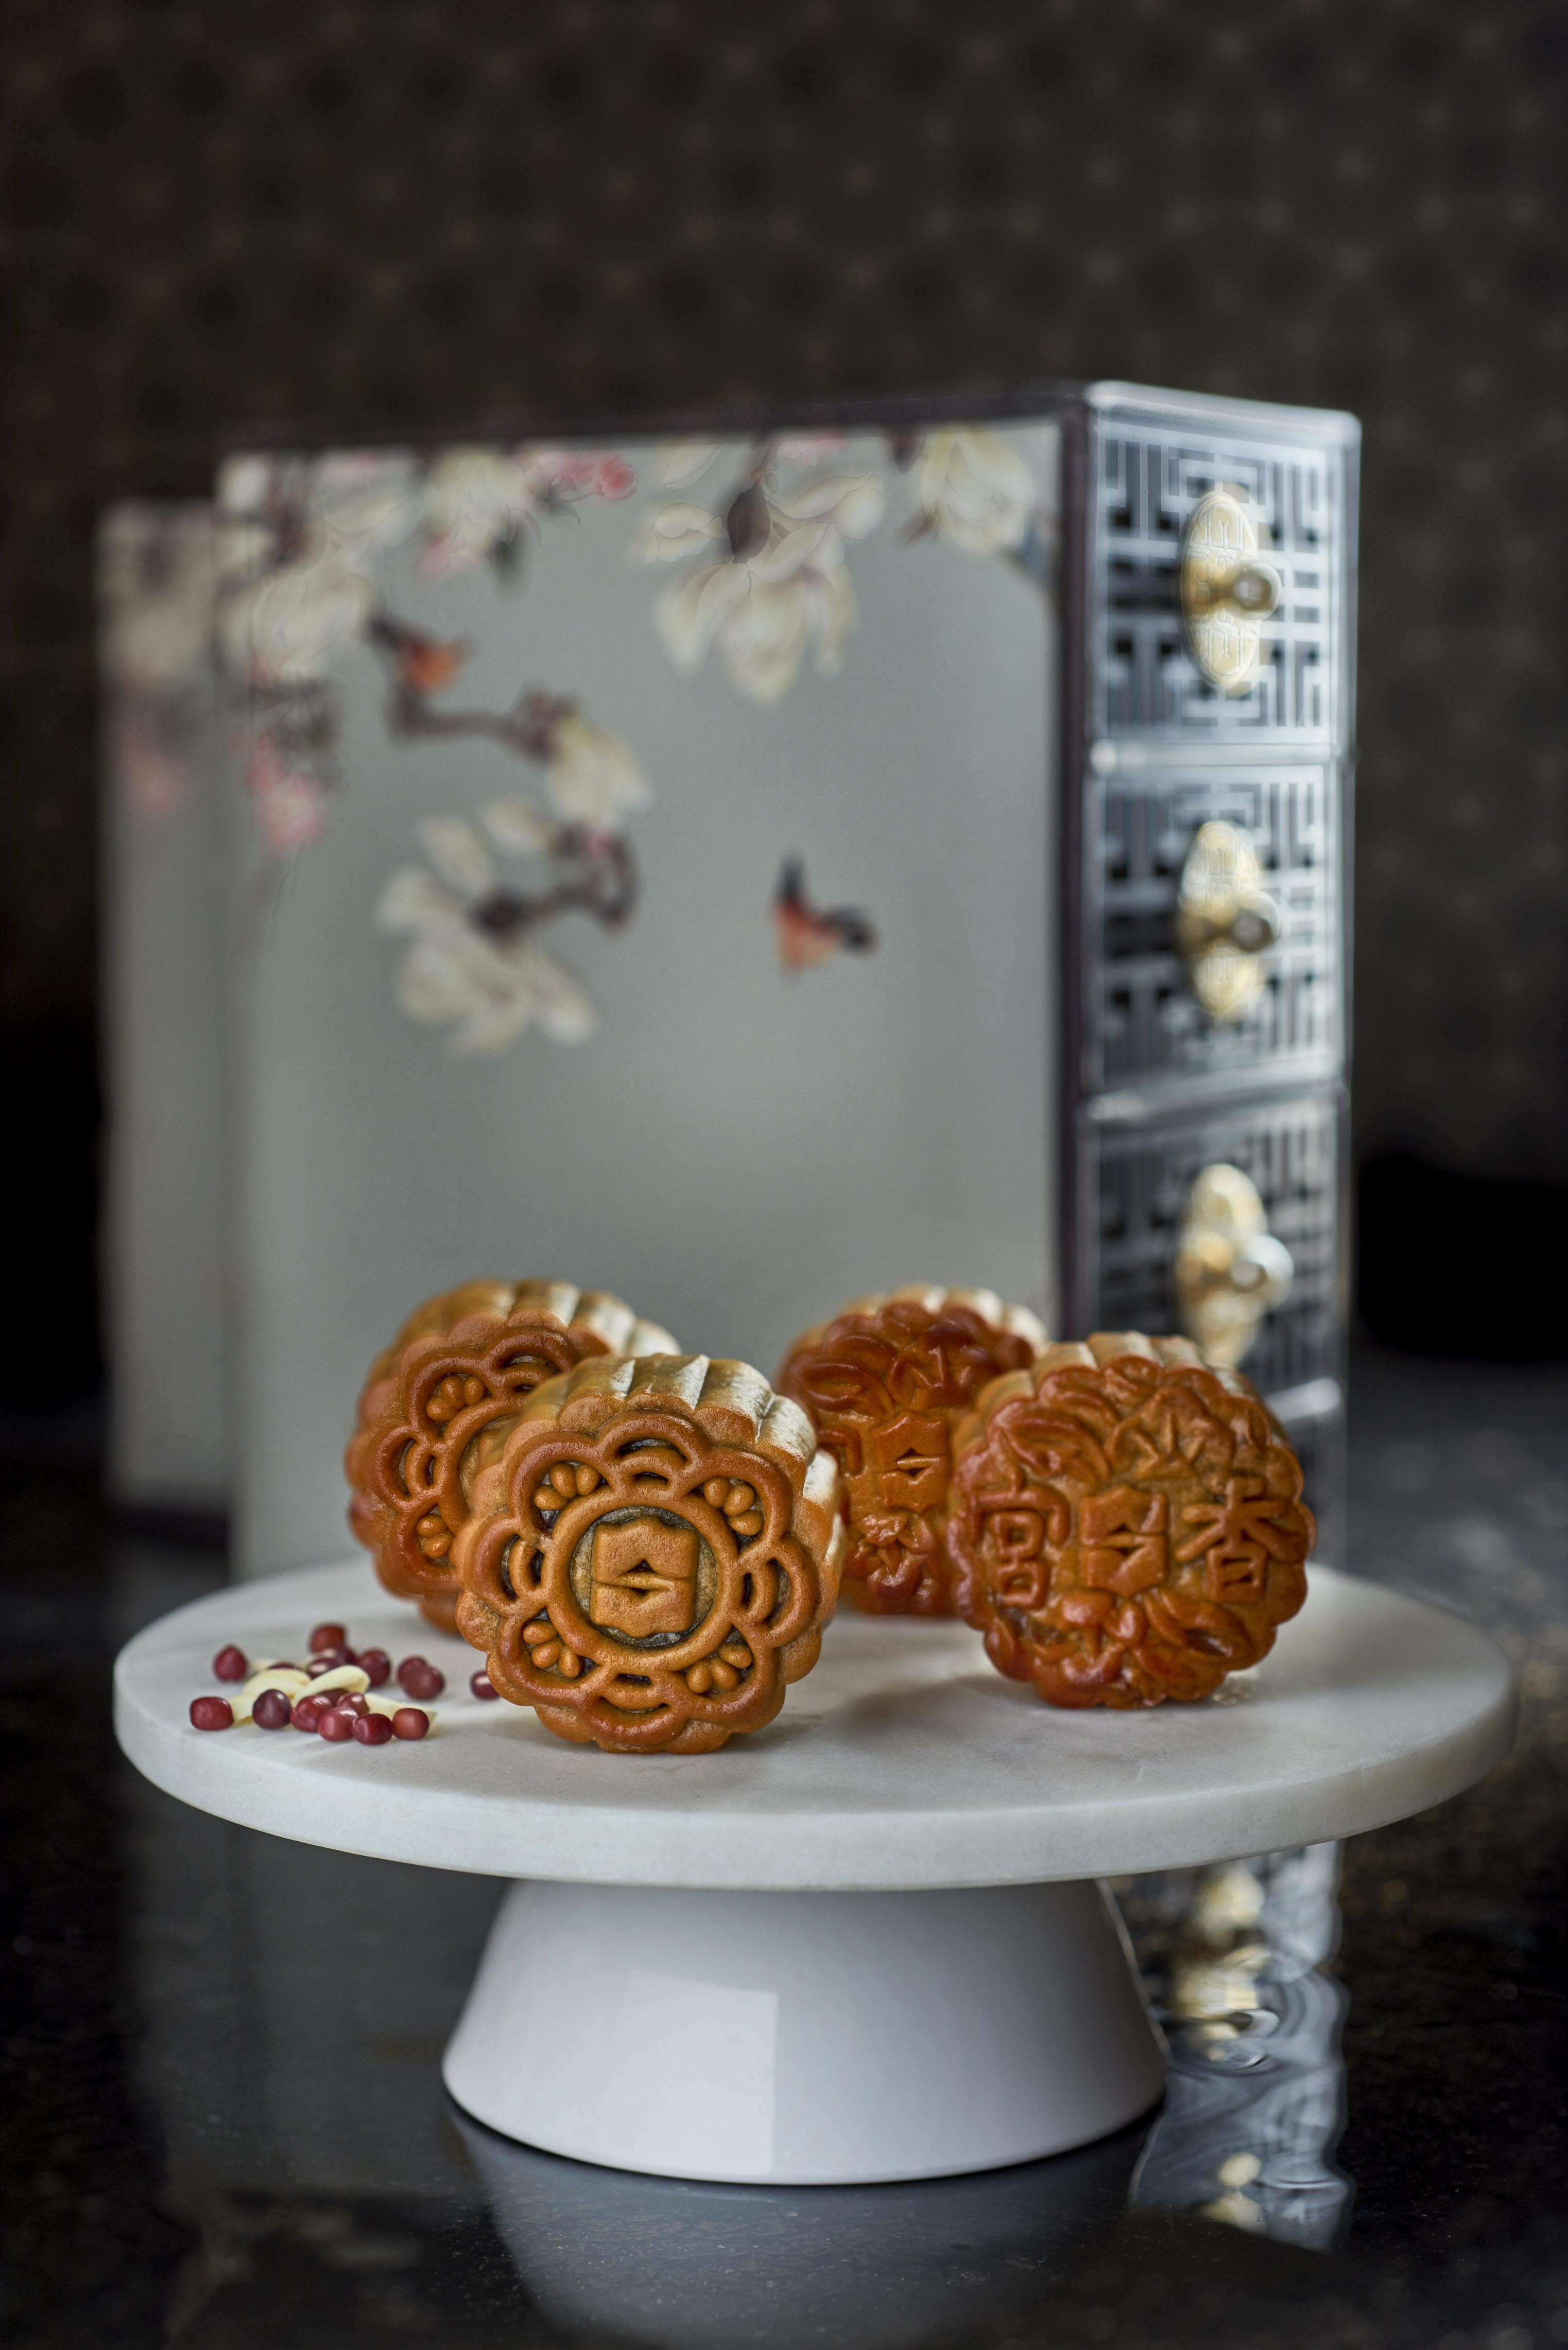 Shang Palace at Shangri-La Hotel offers gorgeous mooncakes that may be too good to eat - Alvinology